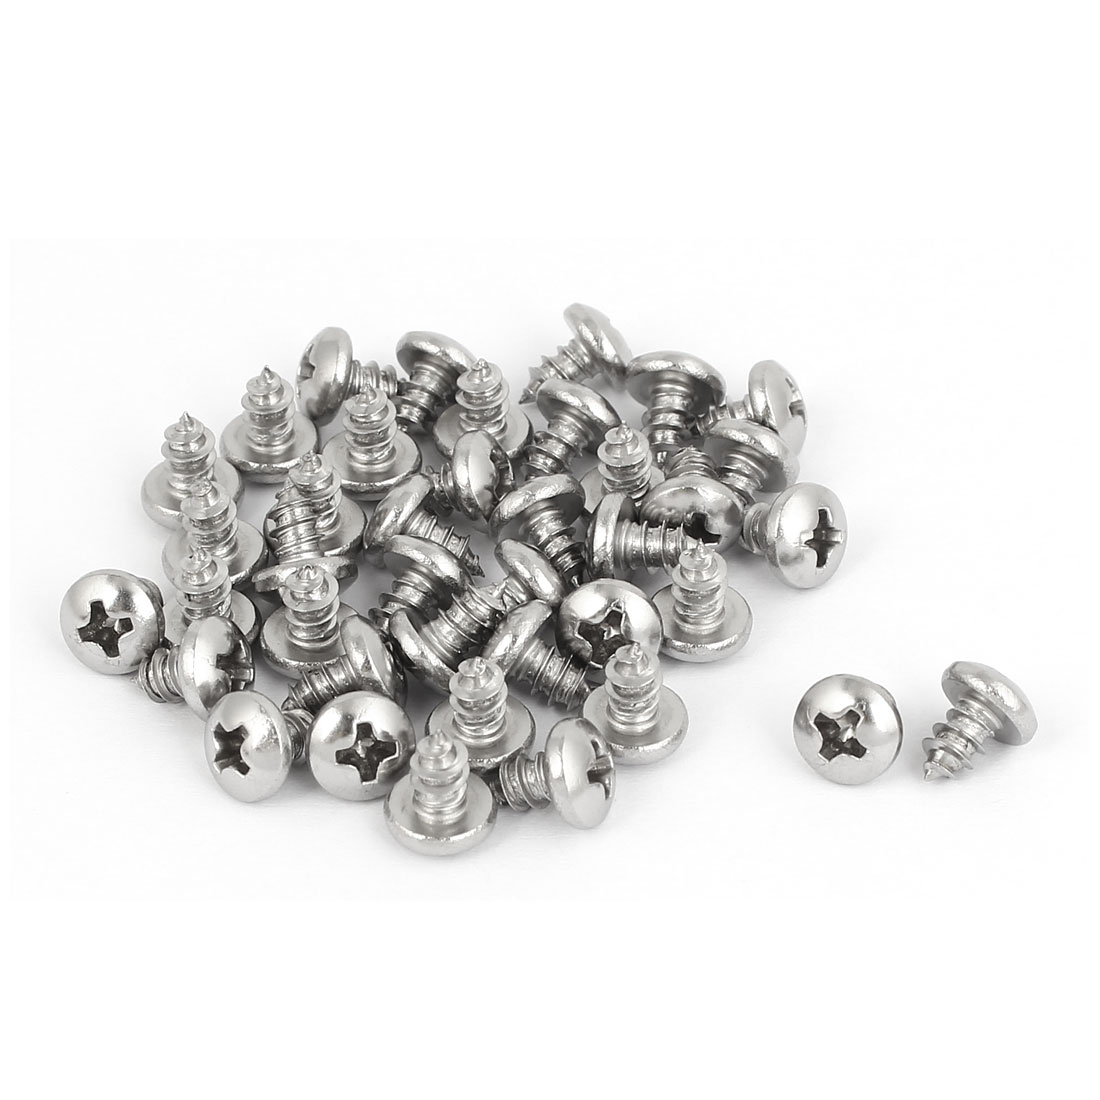 M3.9x6.5mm 316 Stainless Steel Phillips Pan Head Self Tapping Screws Bolts 40pcs